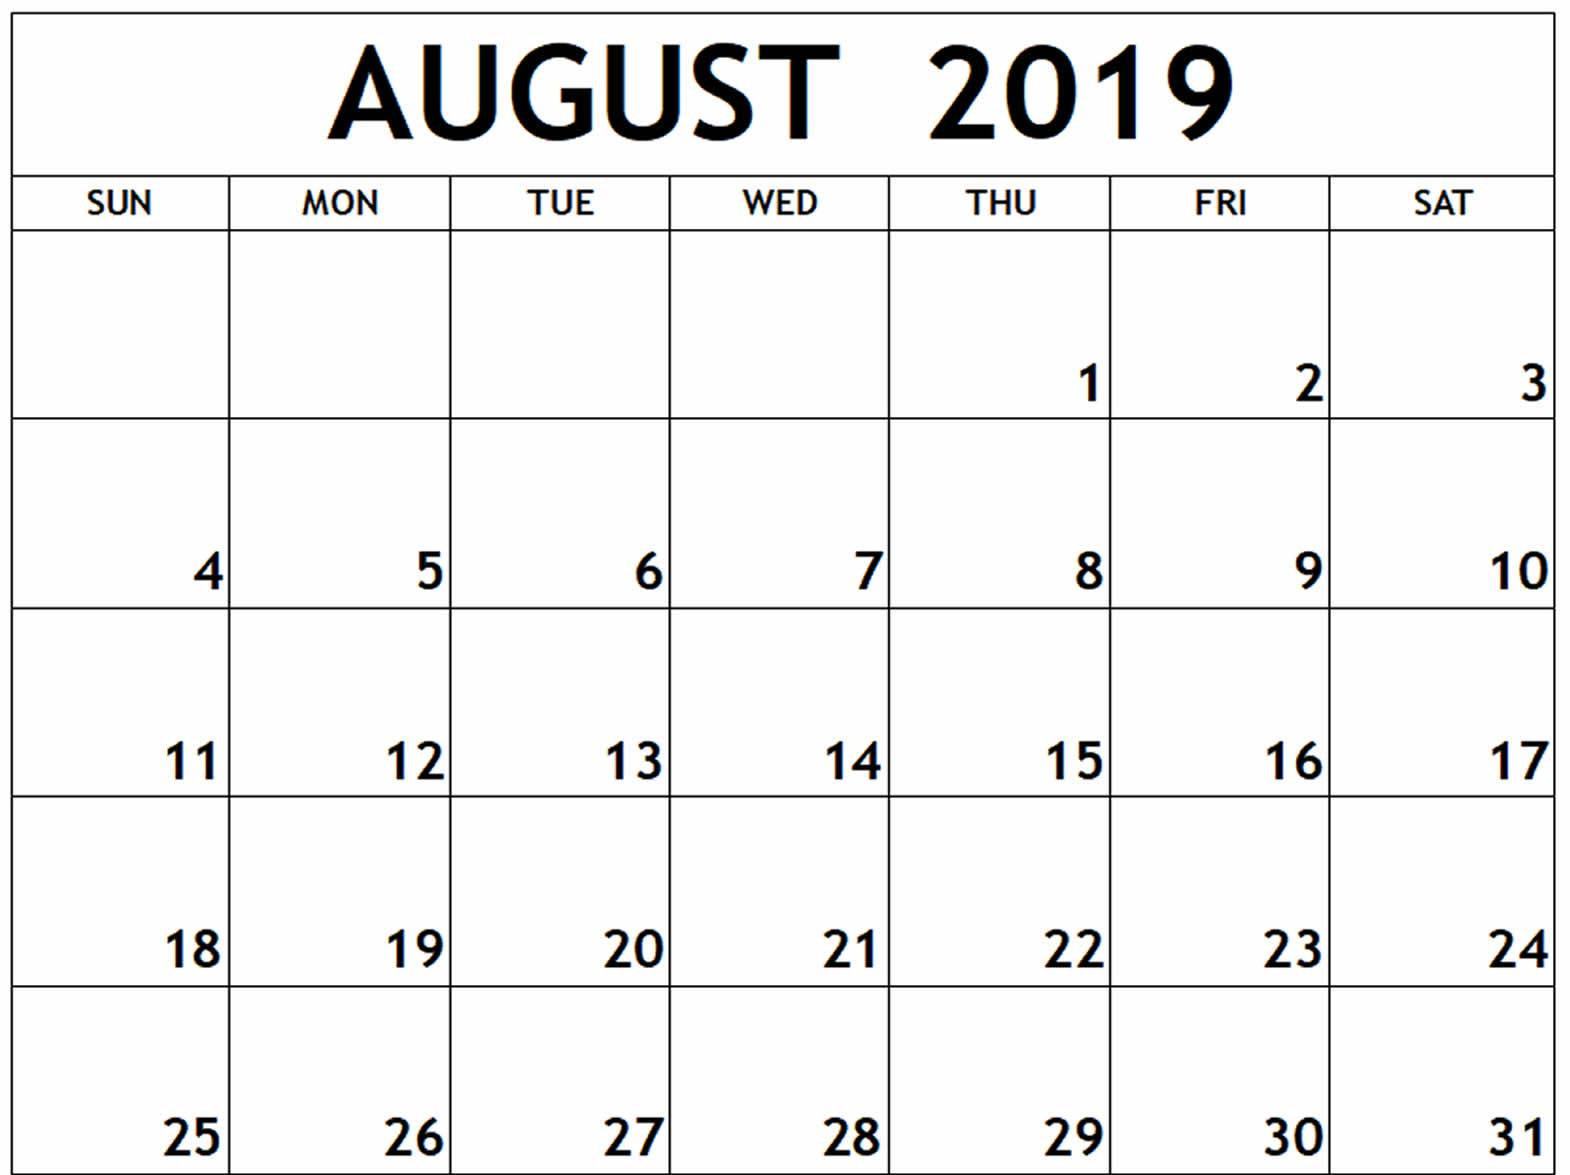 August Calendar 2019 with Holidays